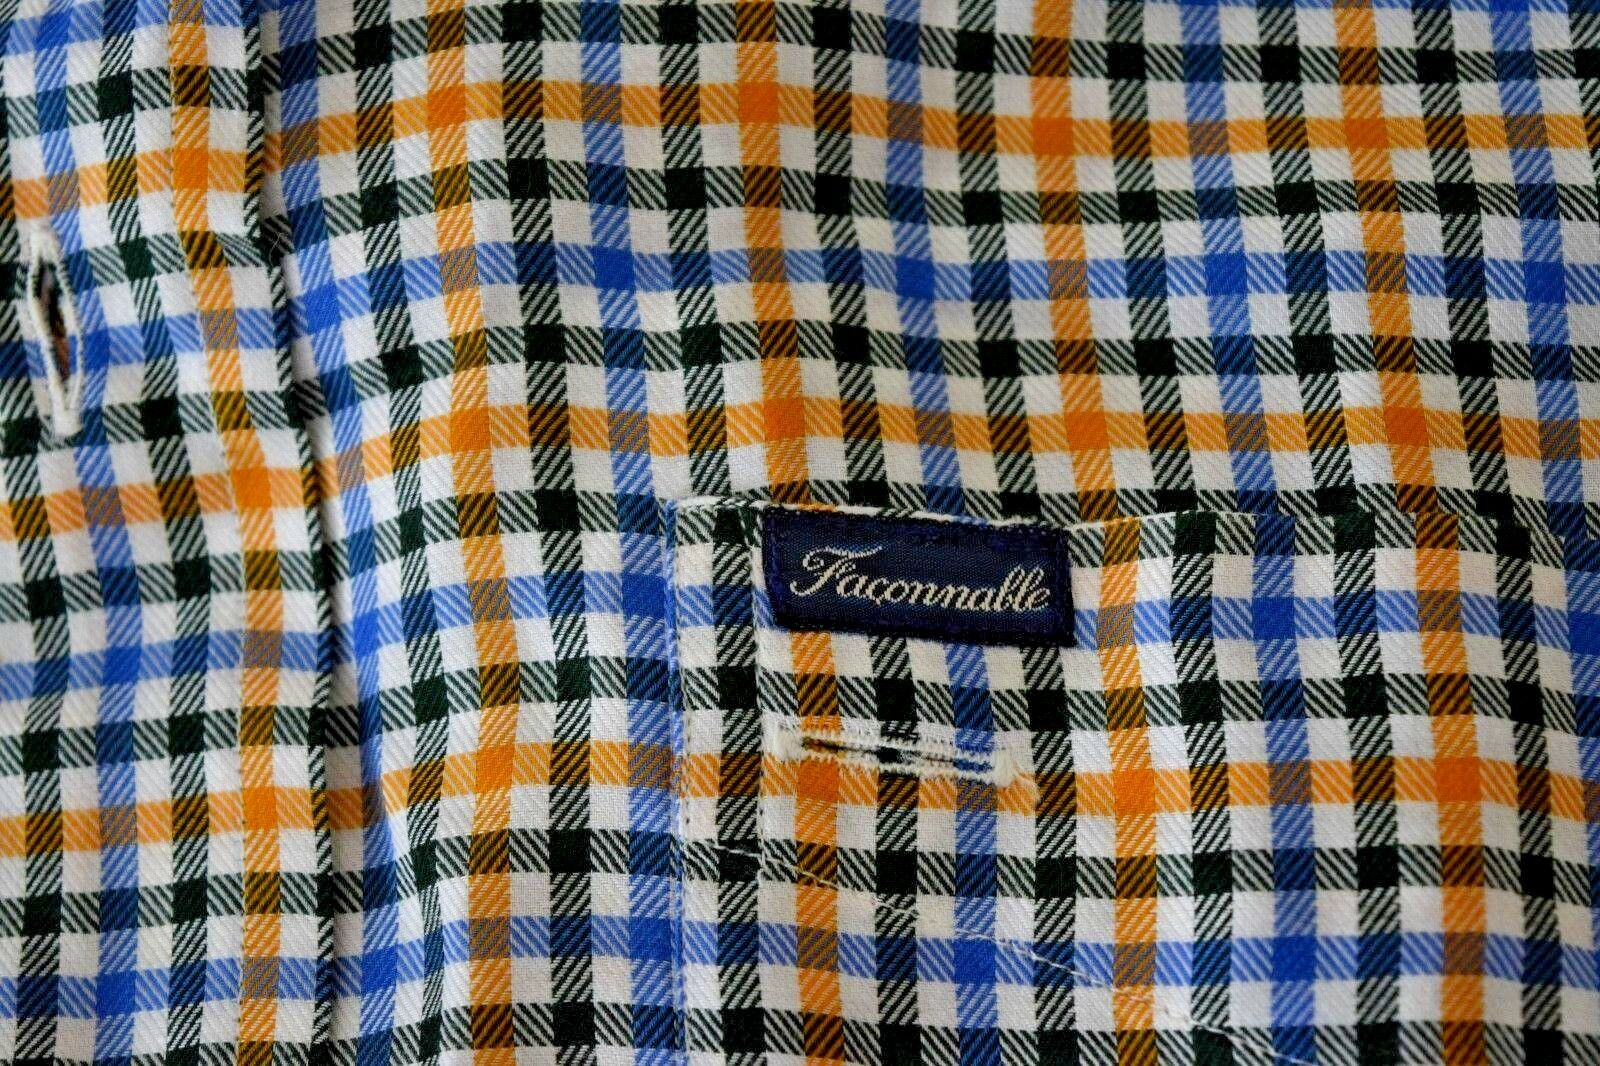 FACONNABLE Men's Shirt XXL Striped Casual Multi color Button Down Camp France